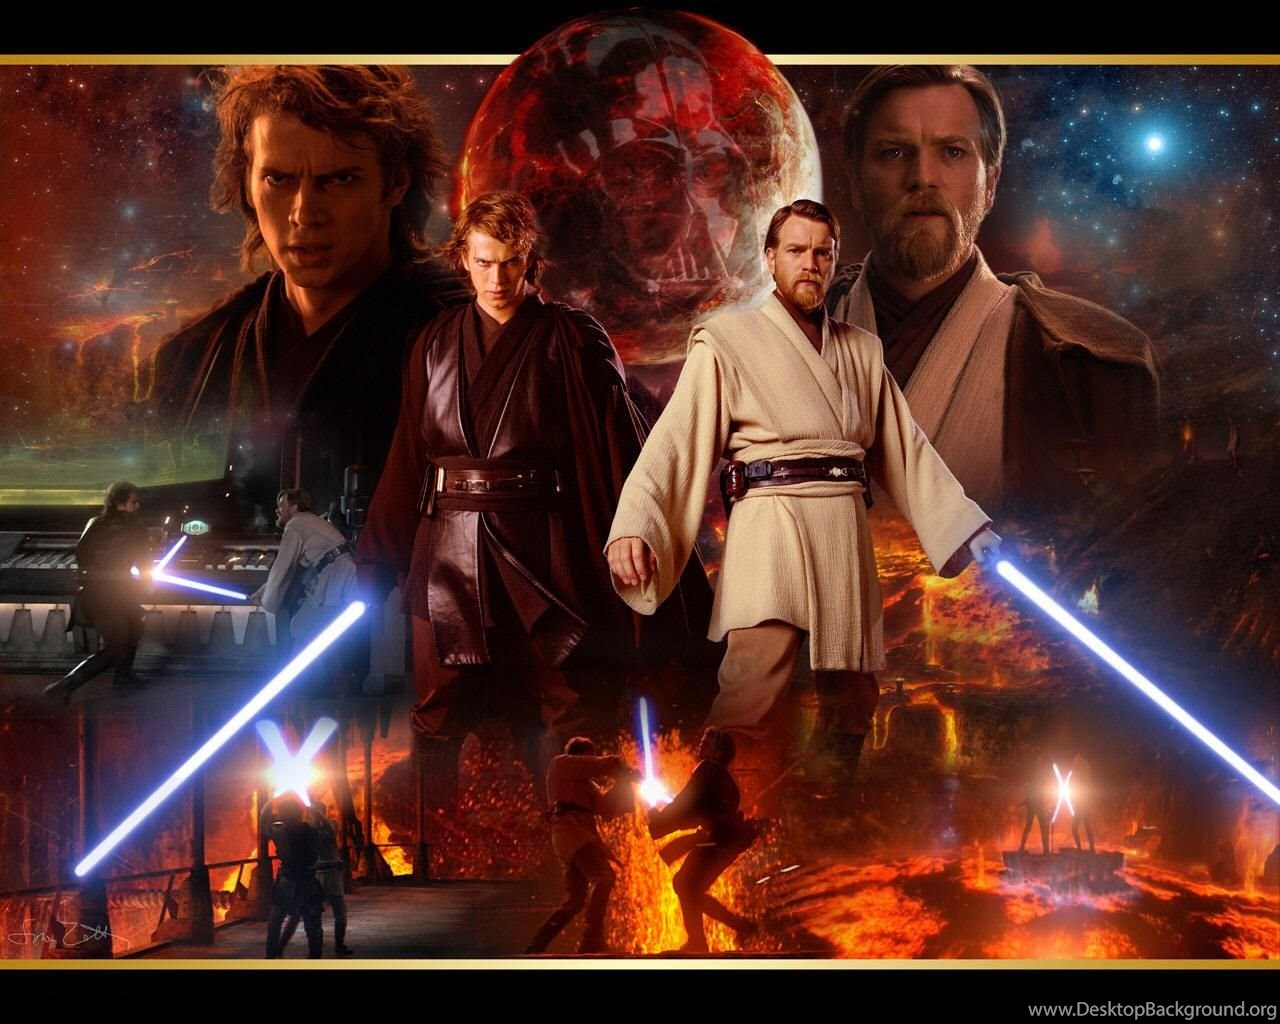 Anakin And Obi Wan Star Wars Revenge Of The Sith Wallpapers Desktop Background